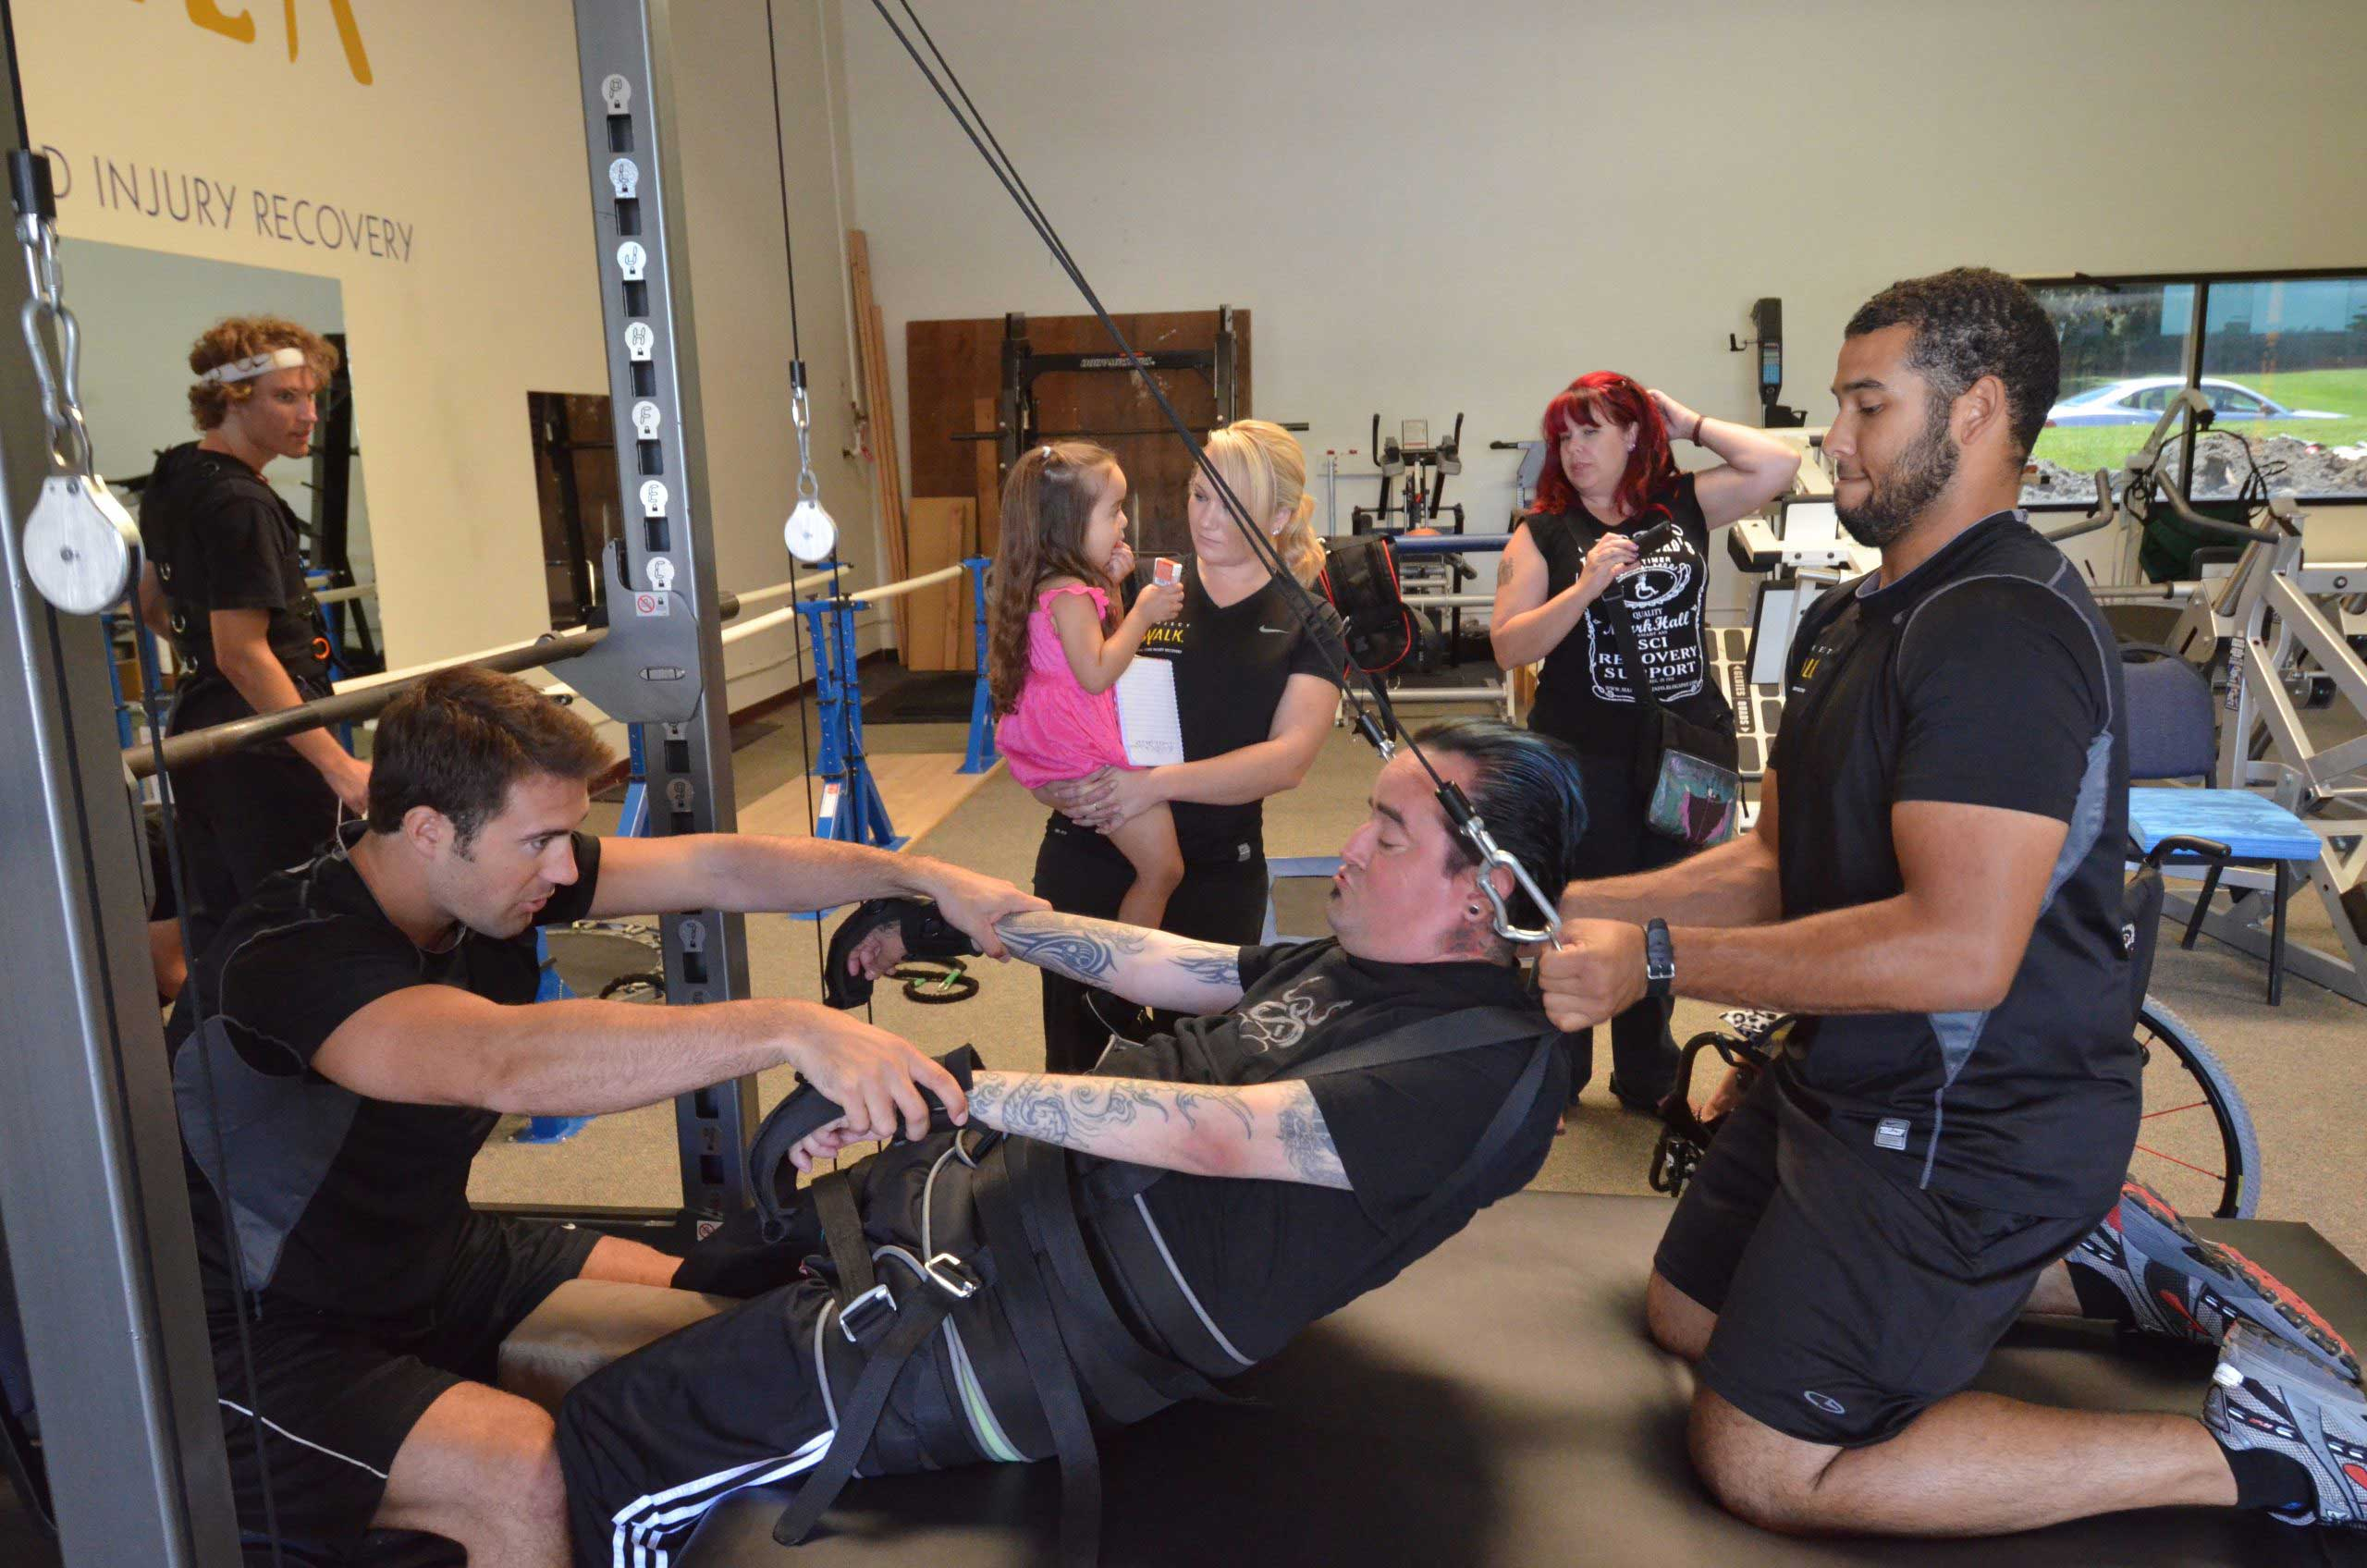 SCI Victims spinal cord injury rehab